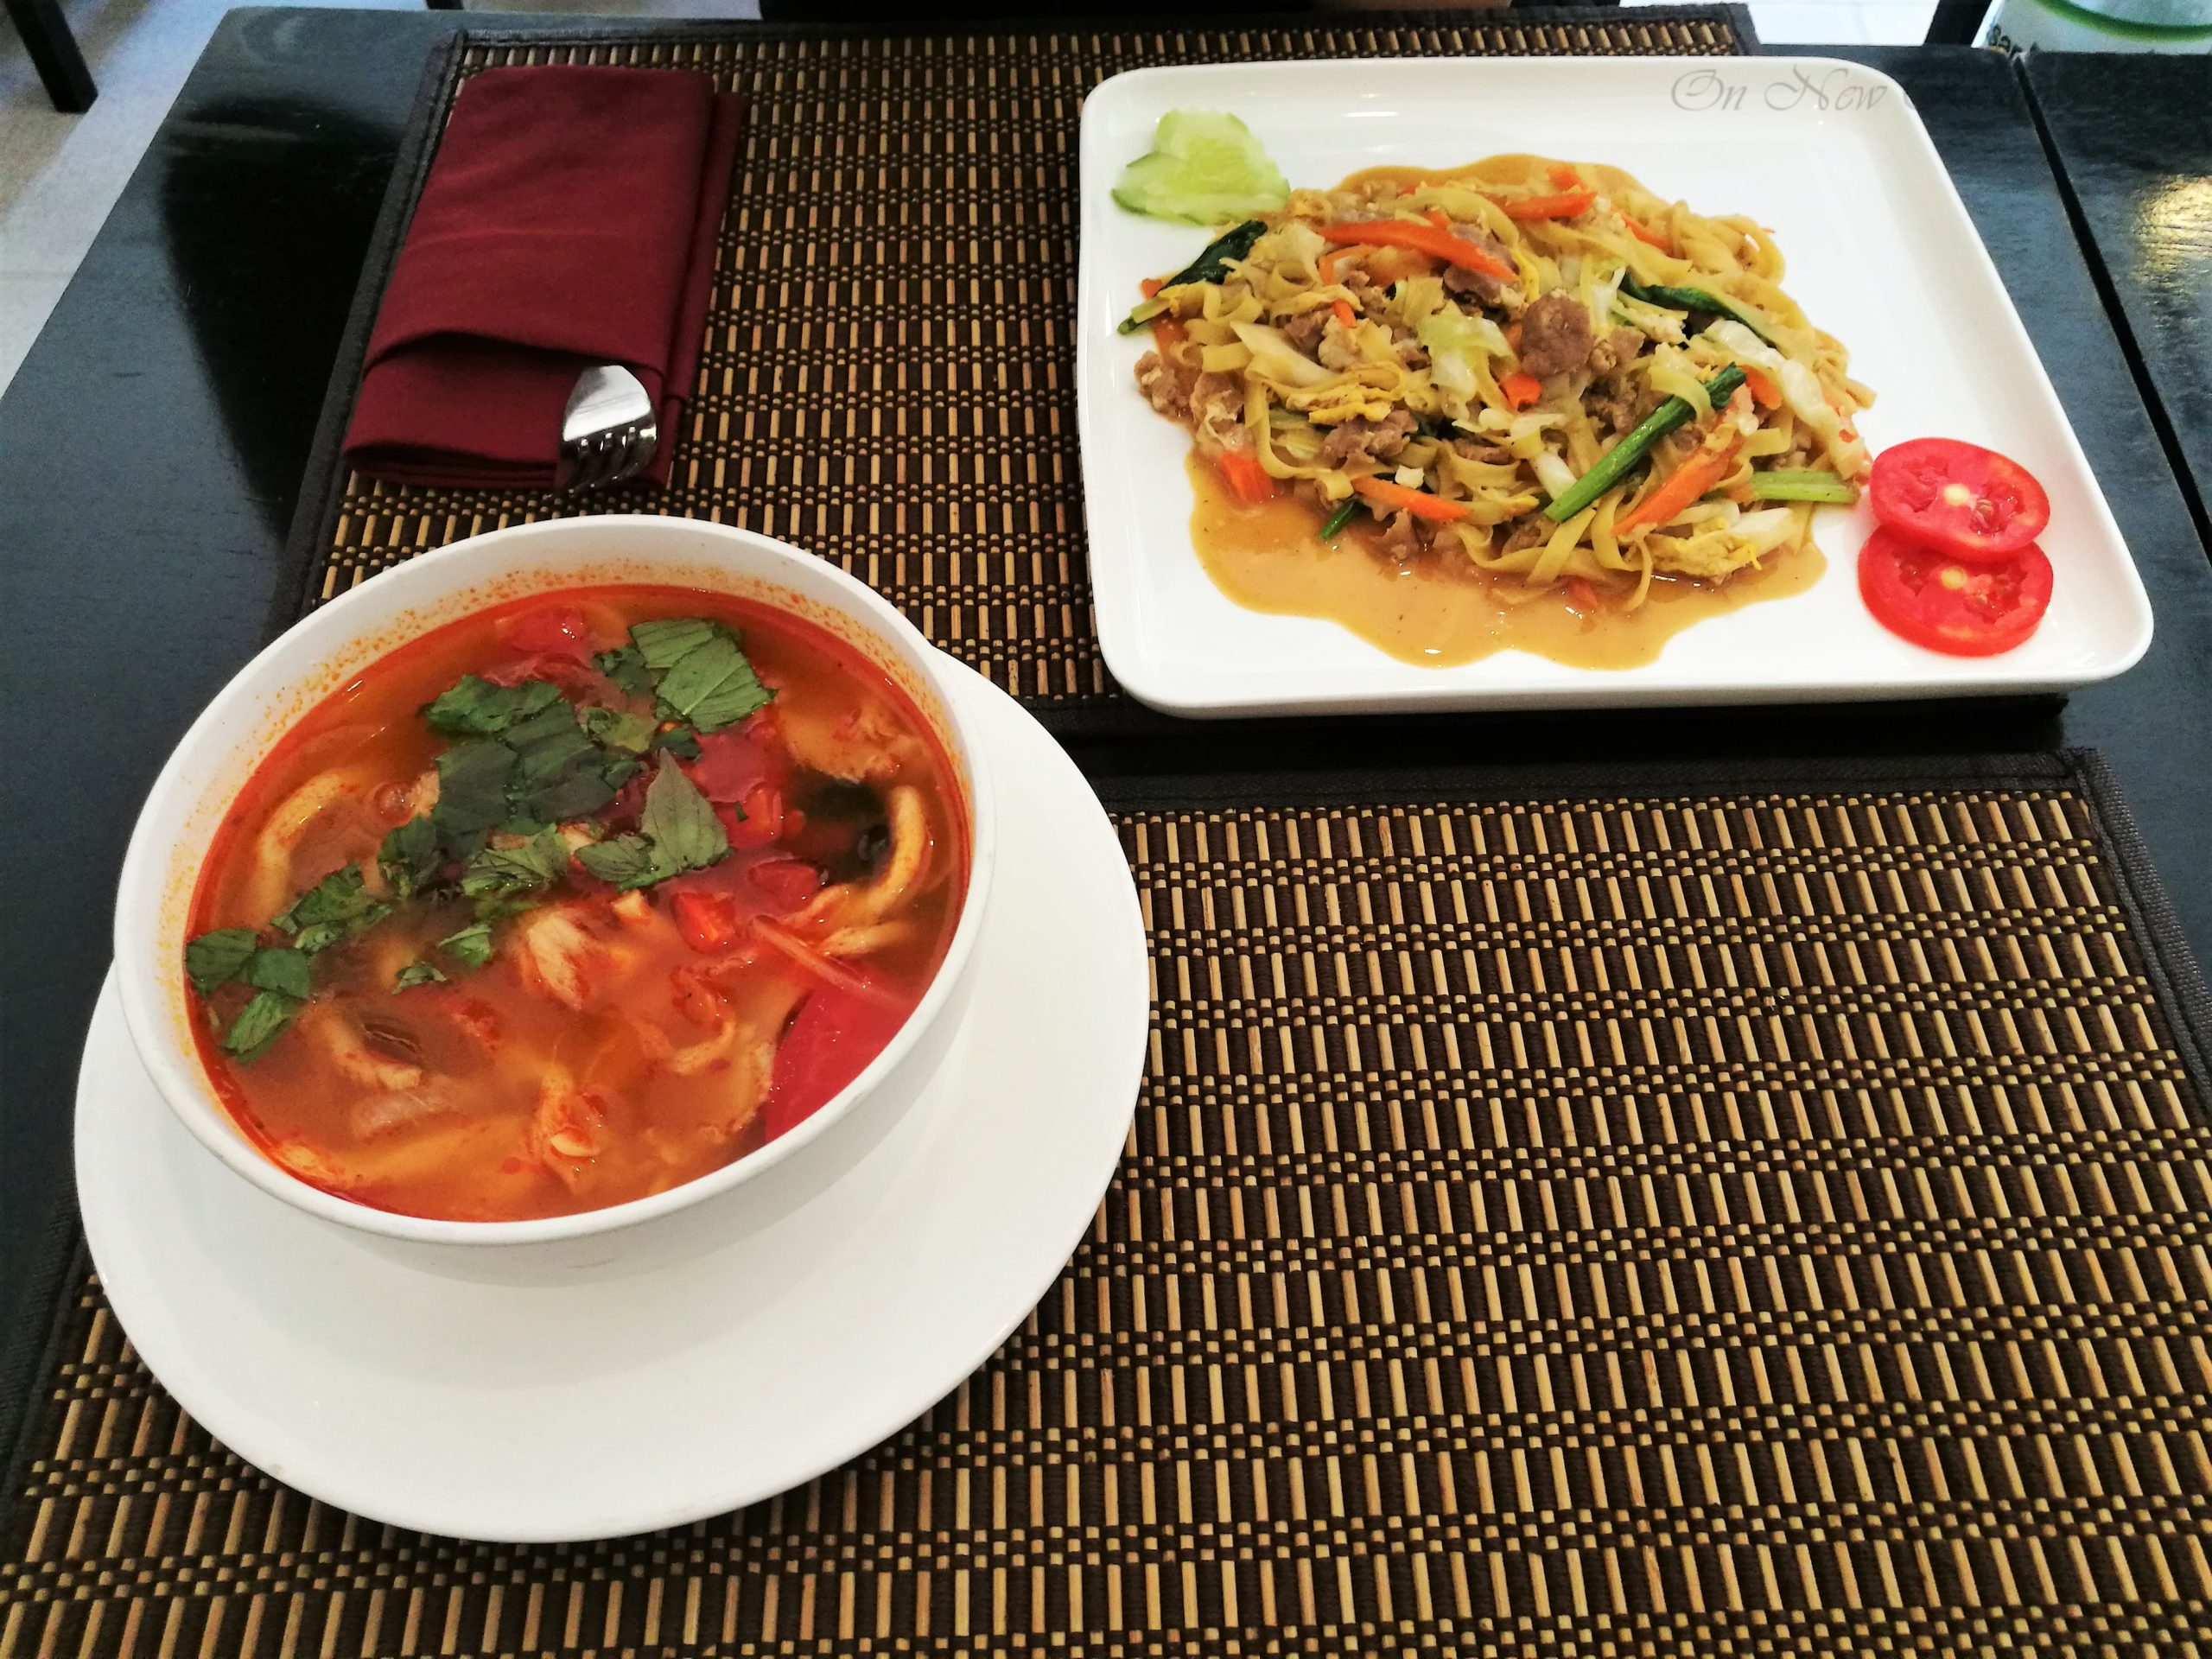 Tom-Yum-soup-and-pork-fried-noodles-Cambodia-scaled